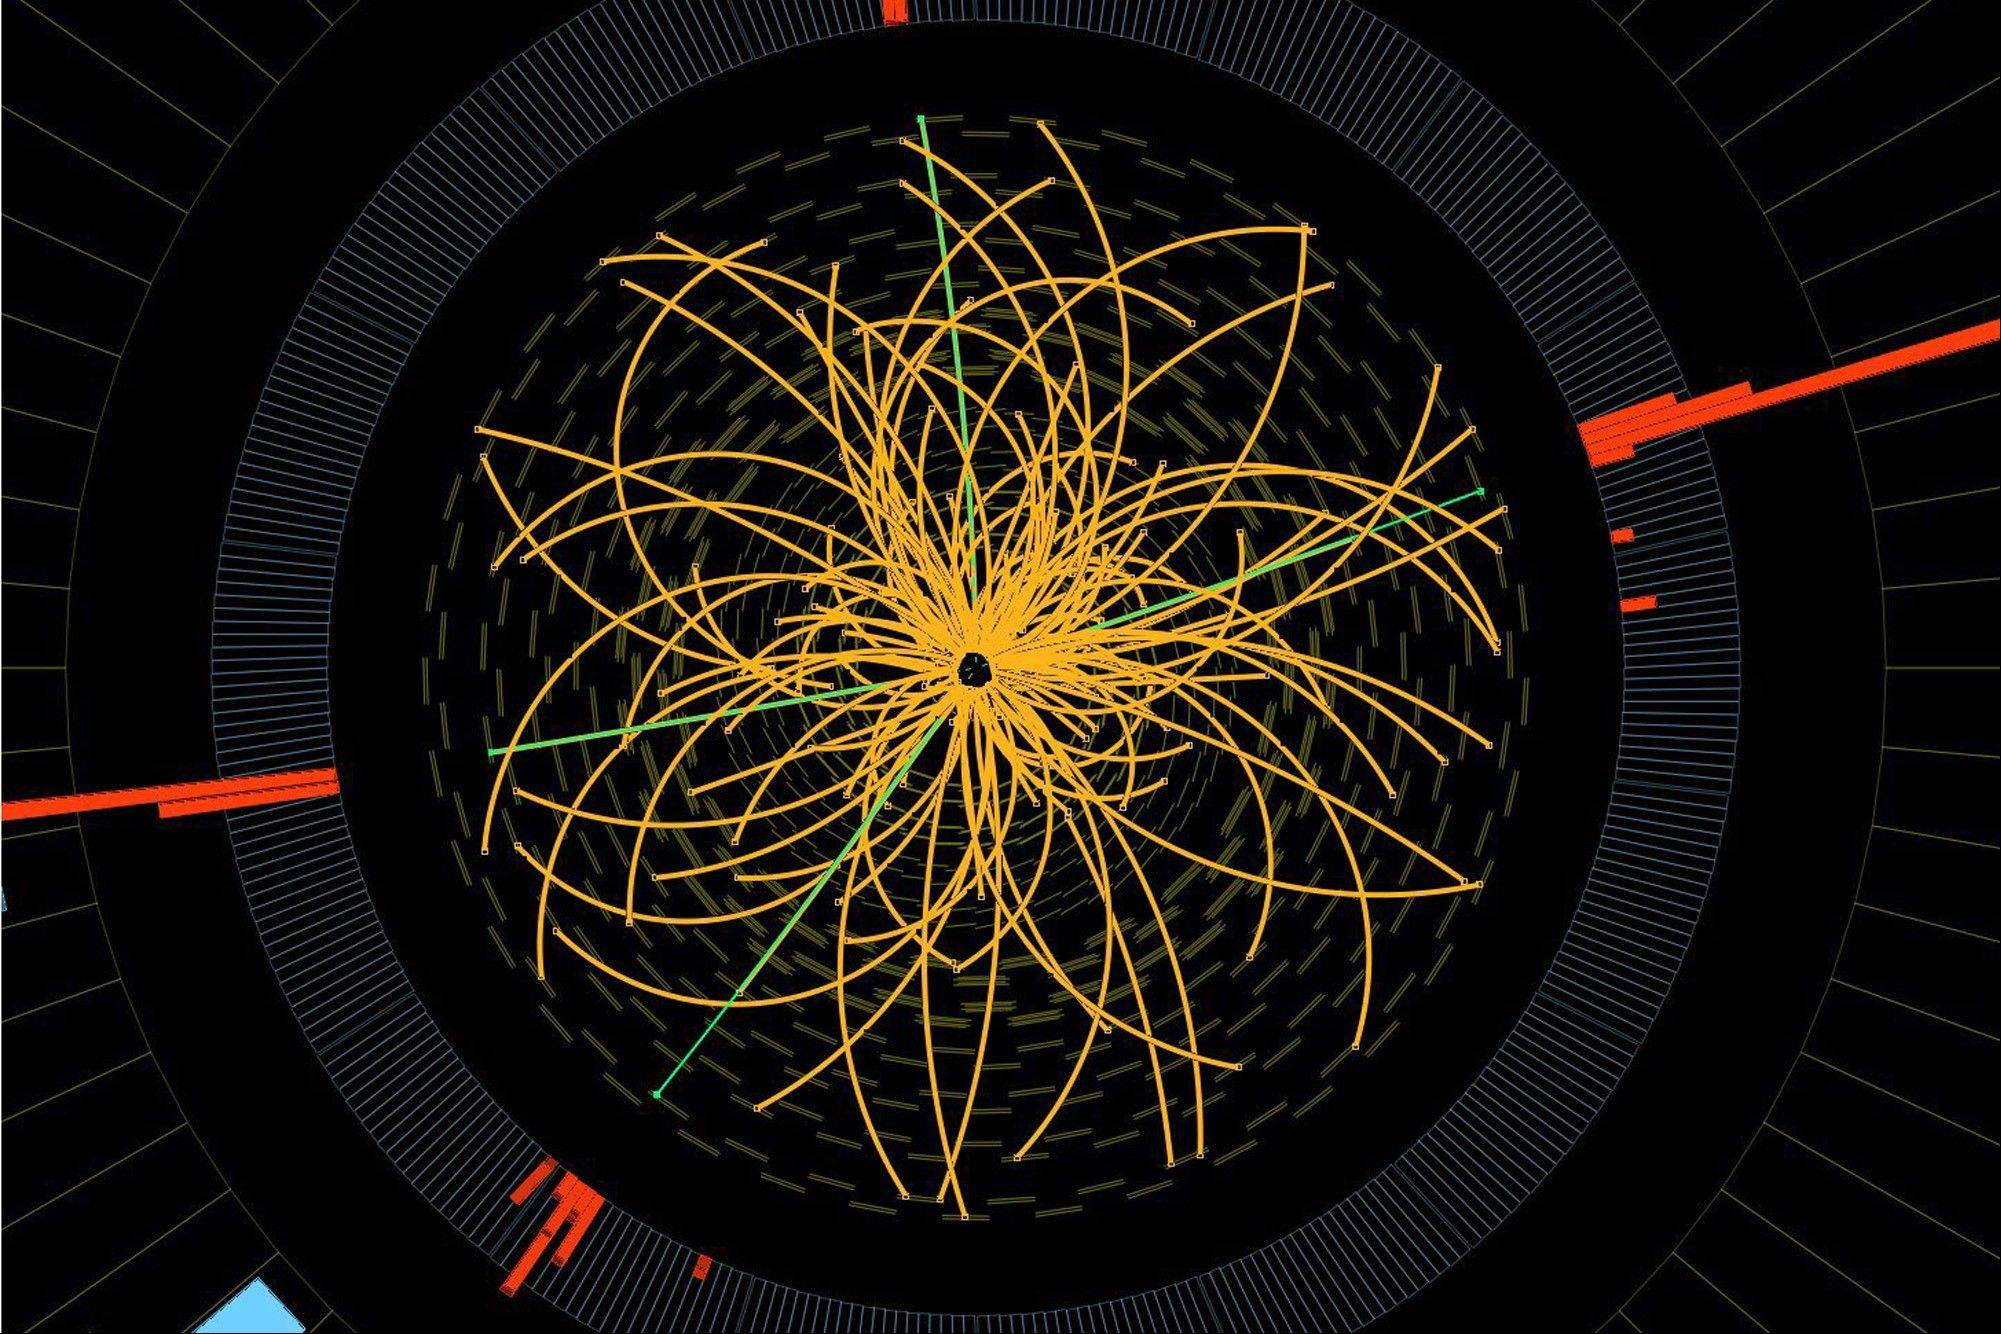 This 2011 image provide by CERN, shows a real CMS proton-proton collision in which four high energy electrons (green lines and red towers) are observed in a 2011 event.